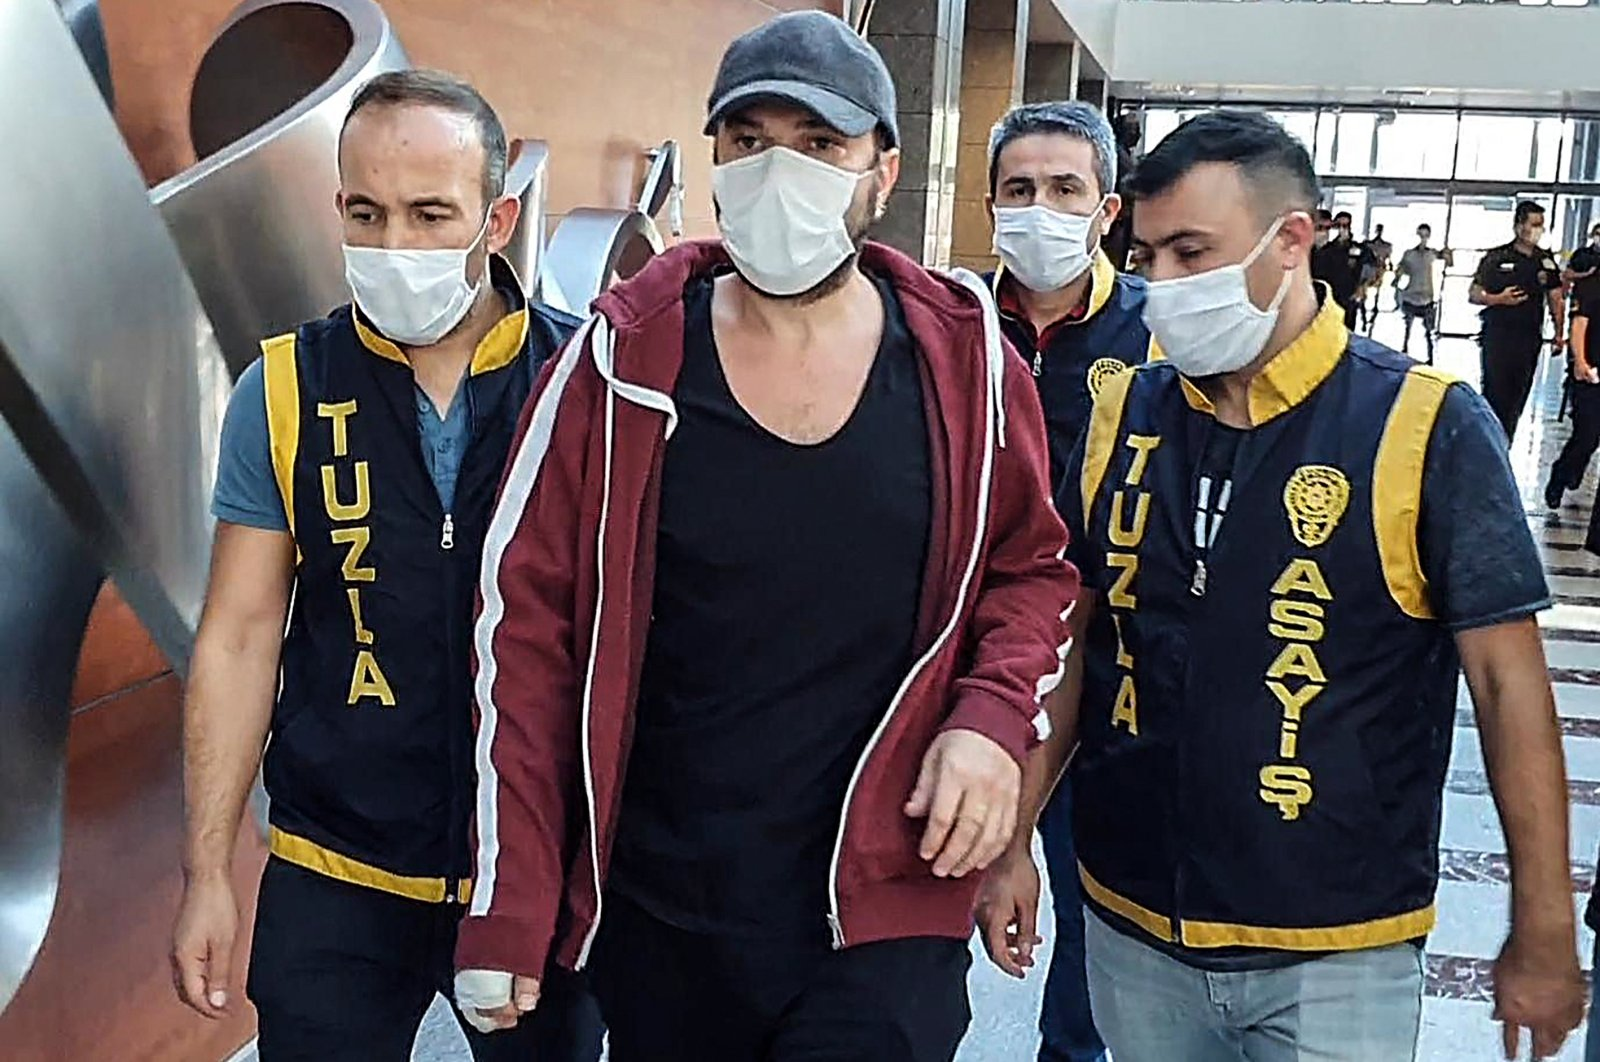 Police escort Halil Sezai Paracıkoğlu (C) to the courthouse in Istanbul, Turkey, Sept. 17, 2020. (AA Photo)